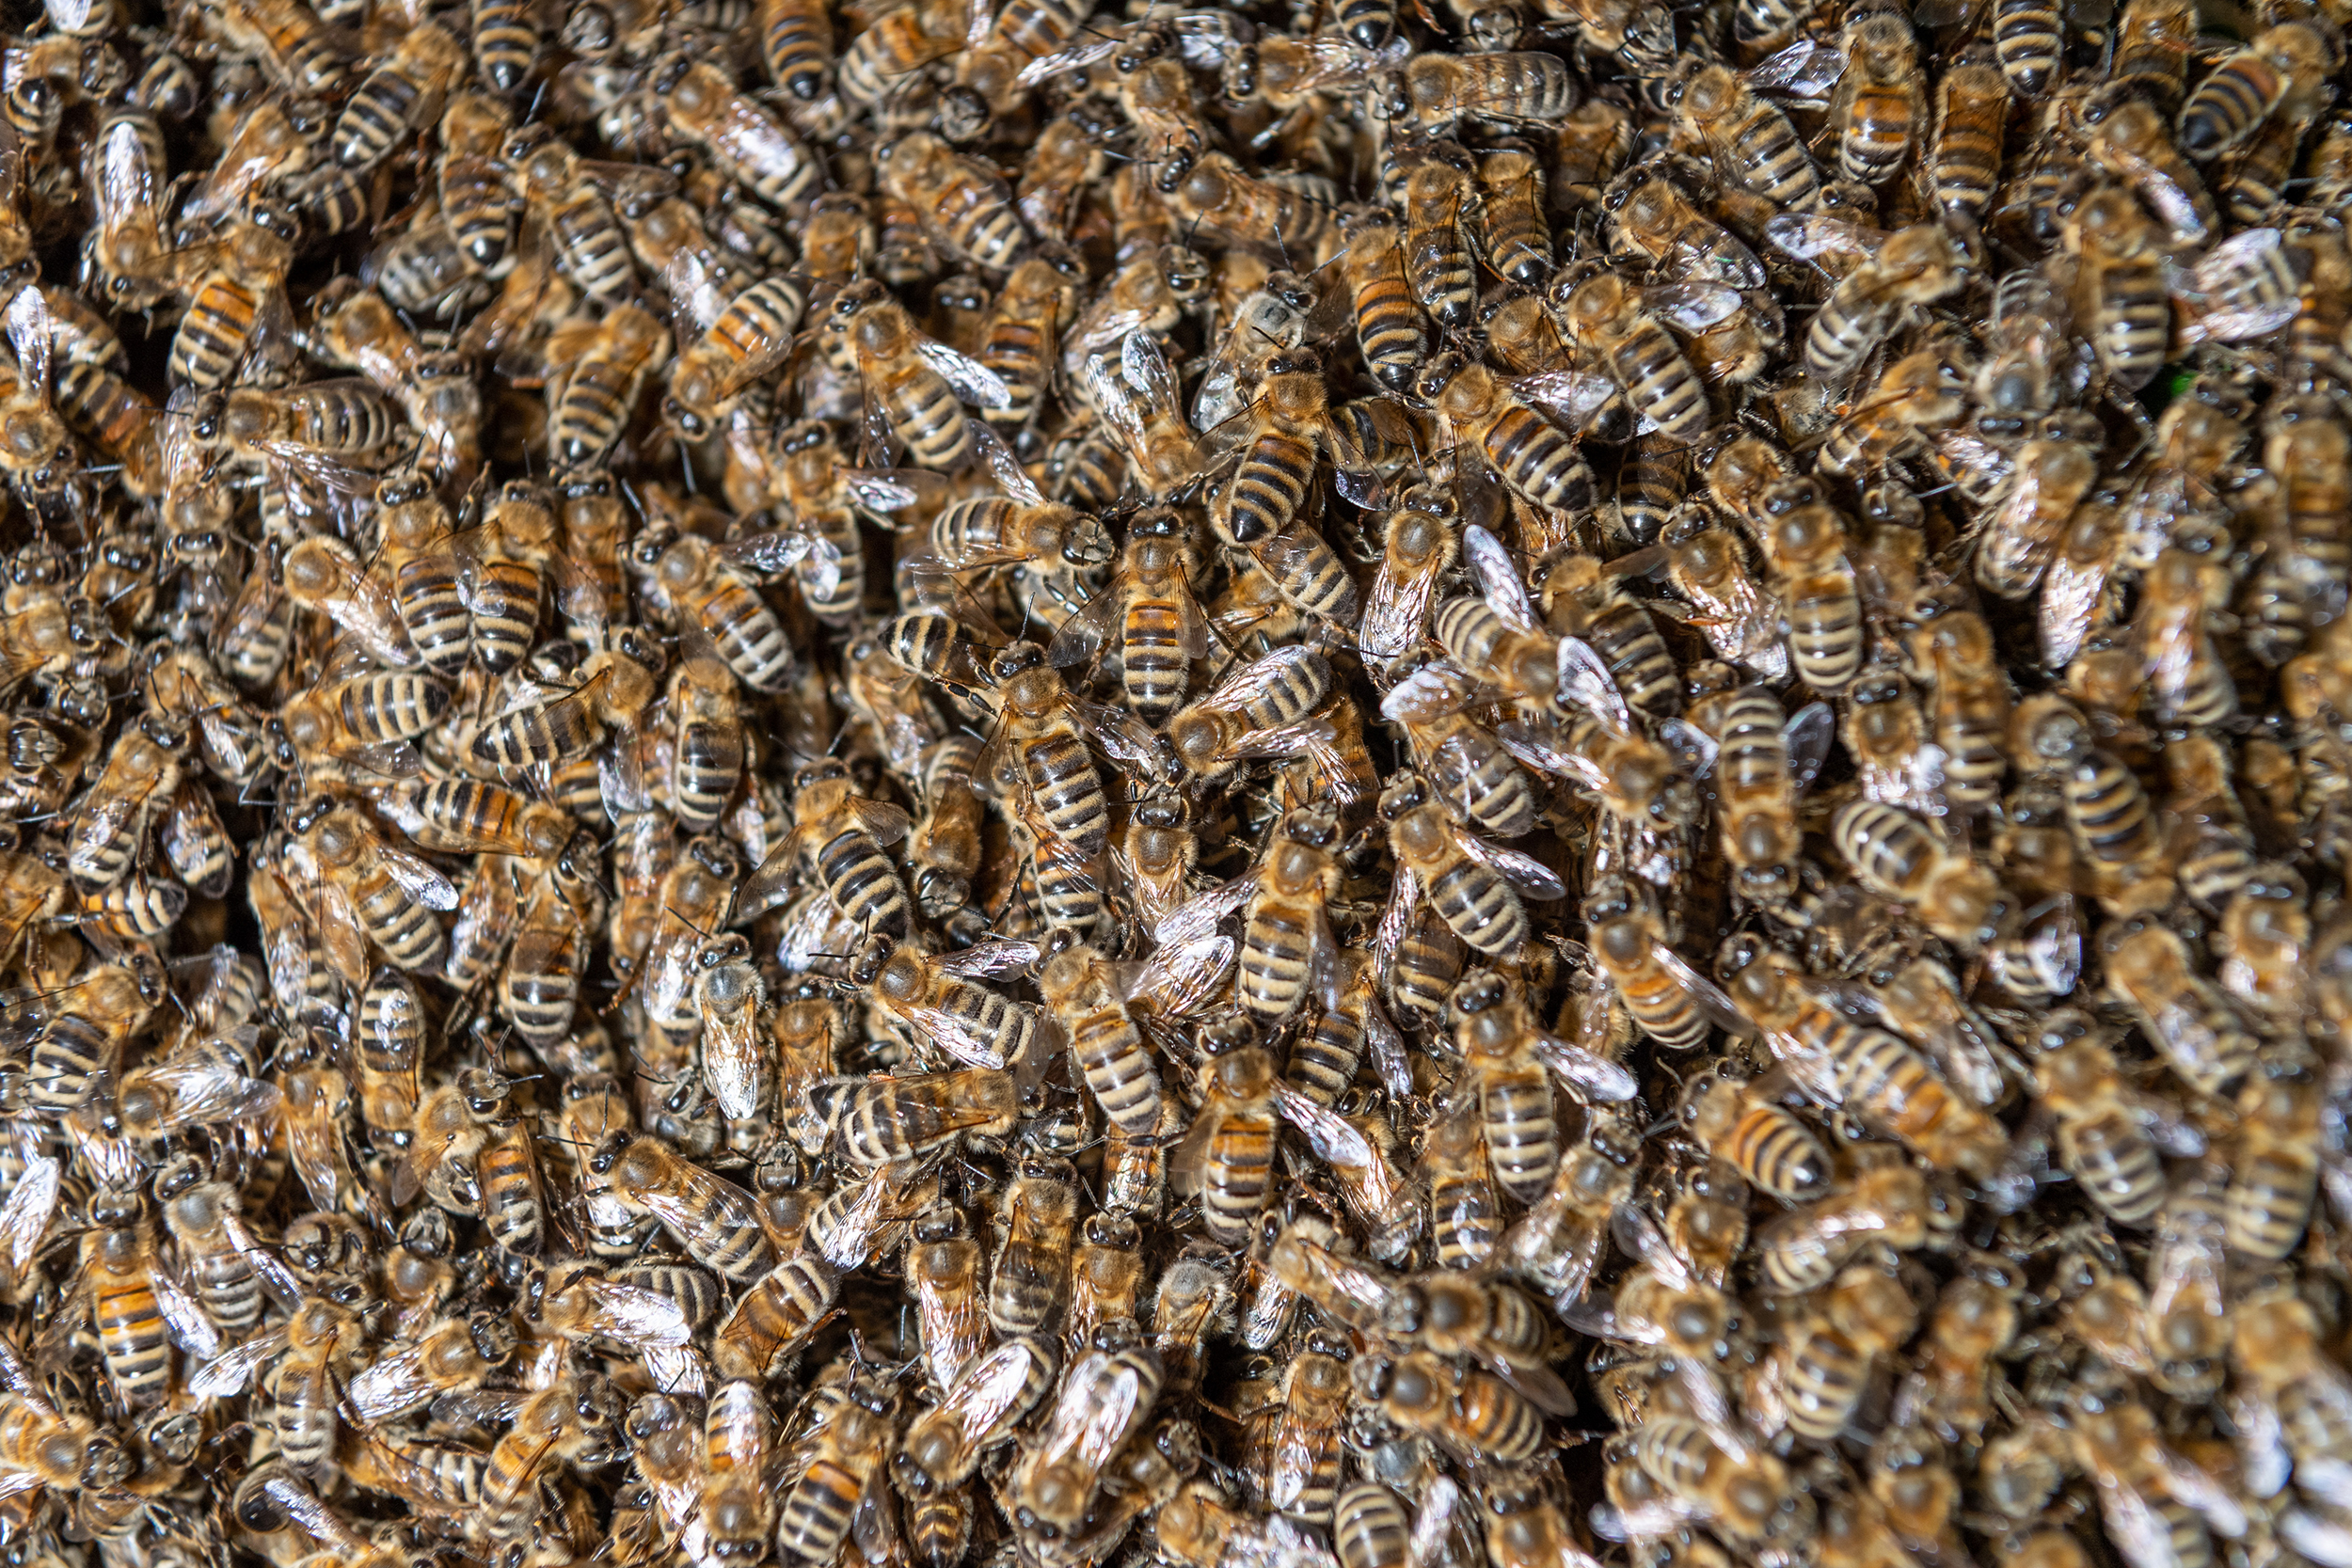 Man killed in Arizona bee swarm, two others hospitalized after hundreds of stings